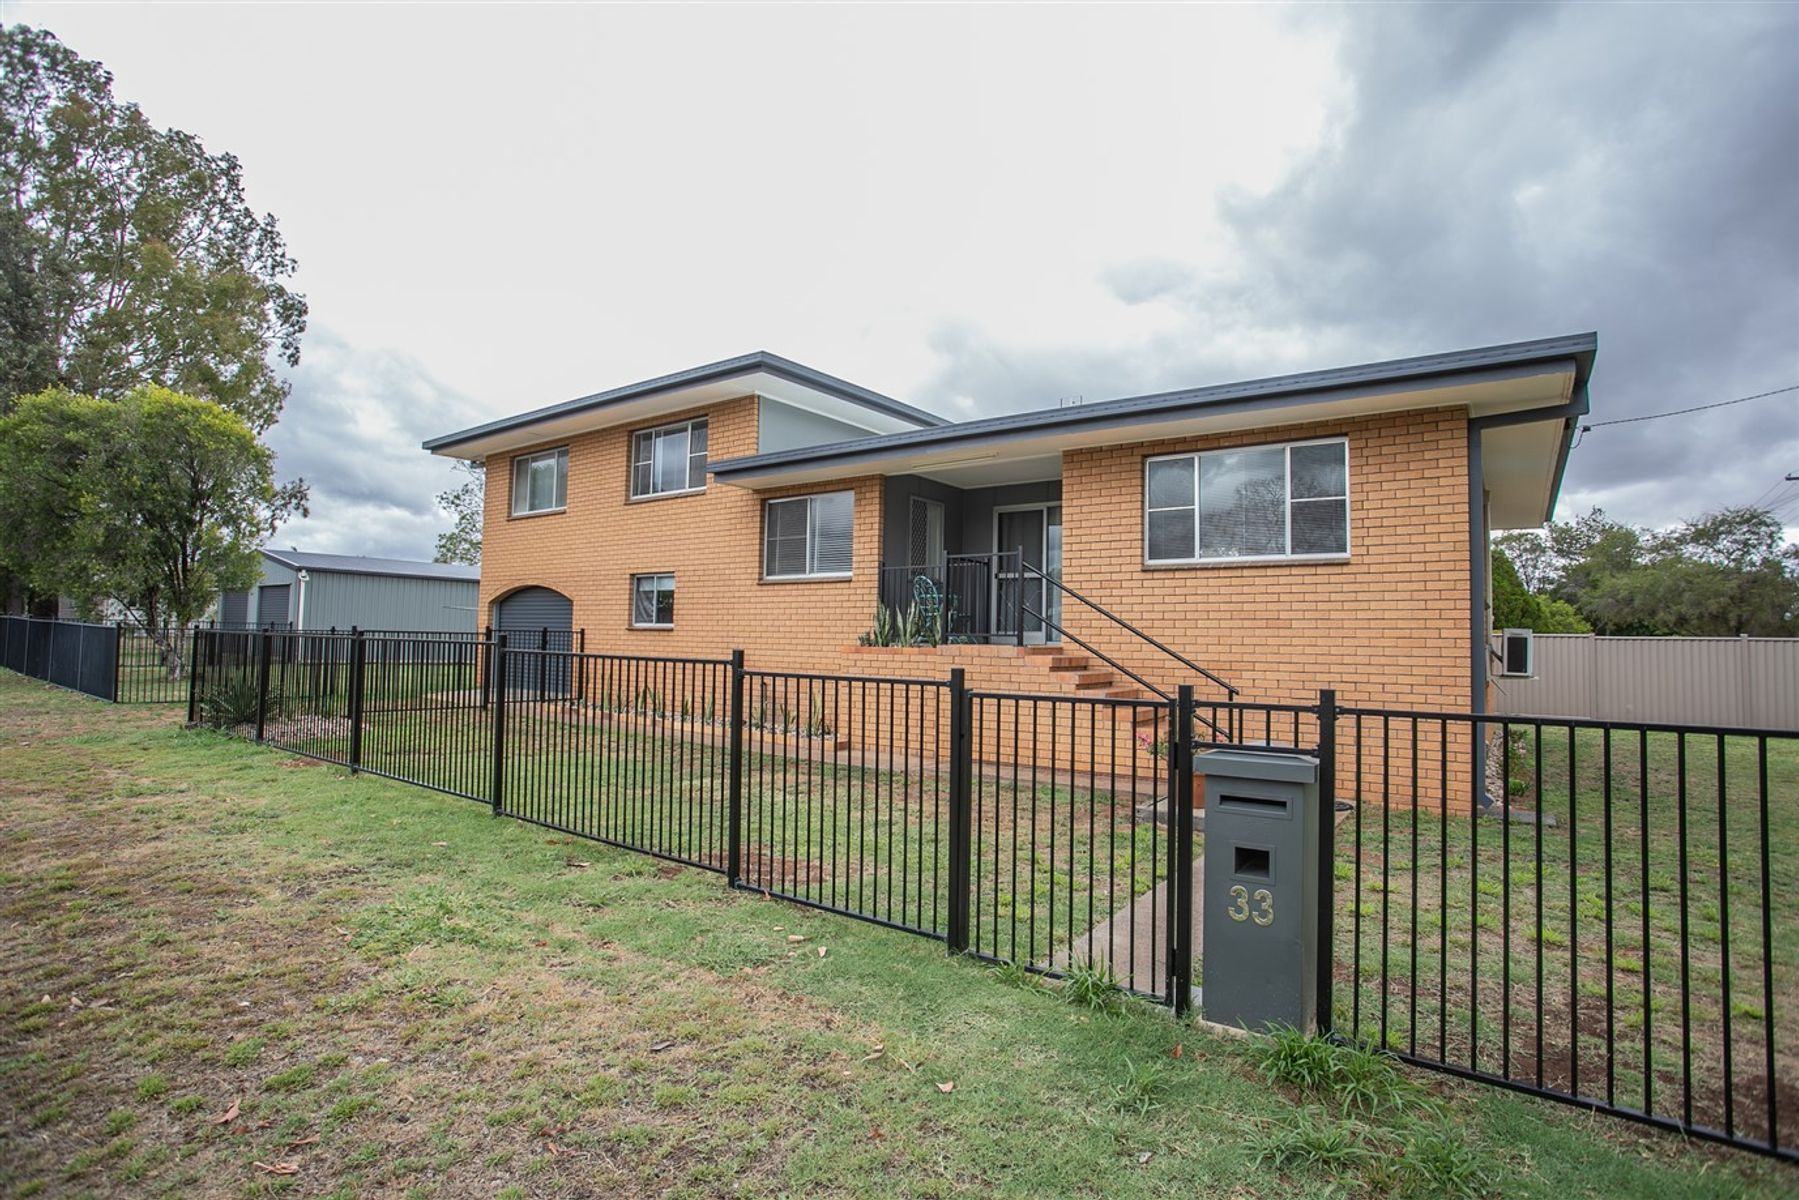 33 Claydon Street, Chinchilla, QLD 4413